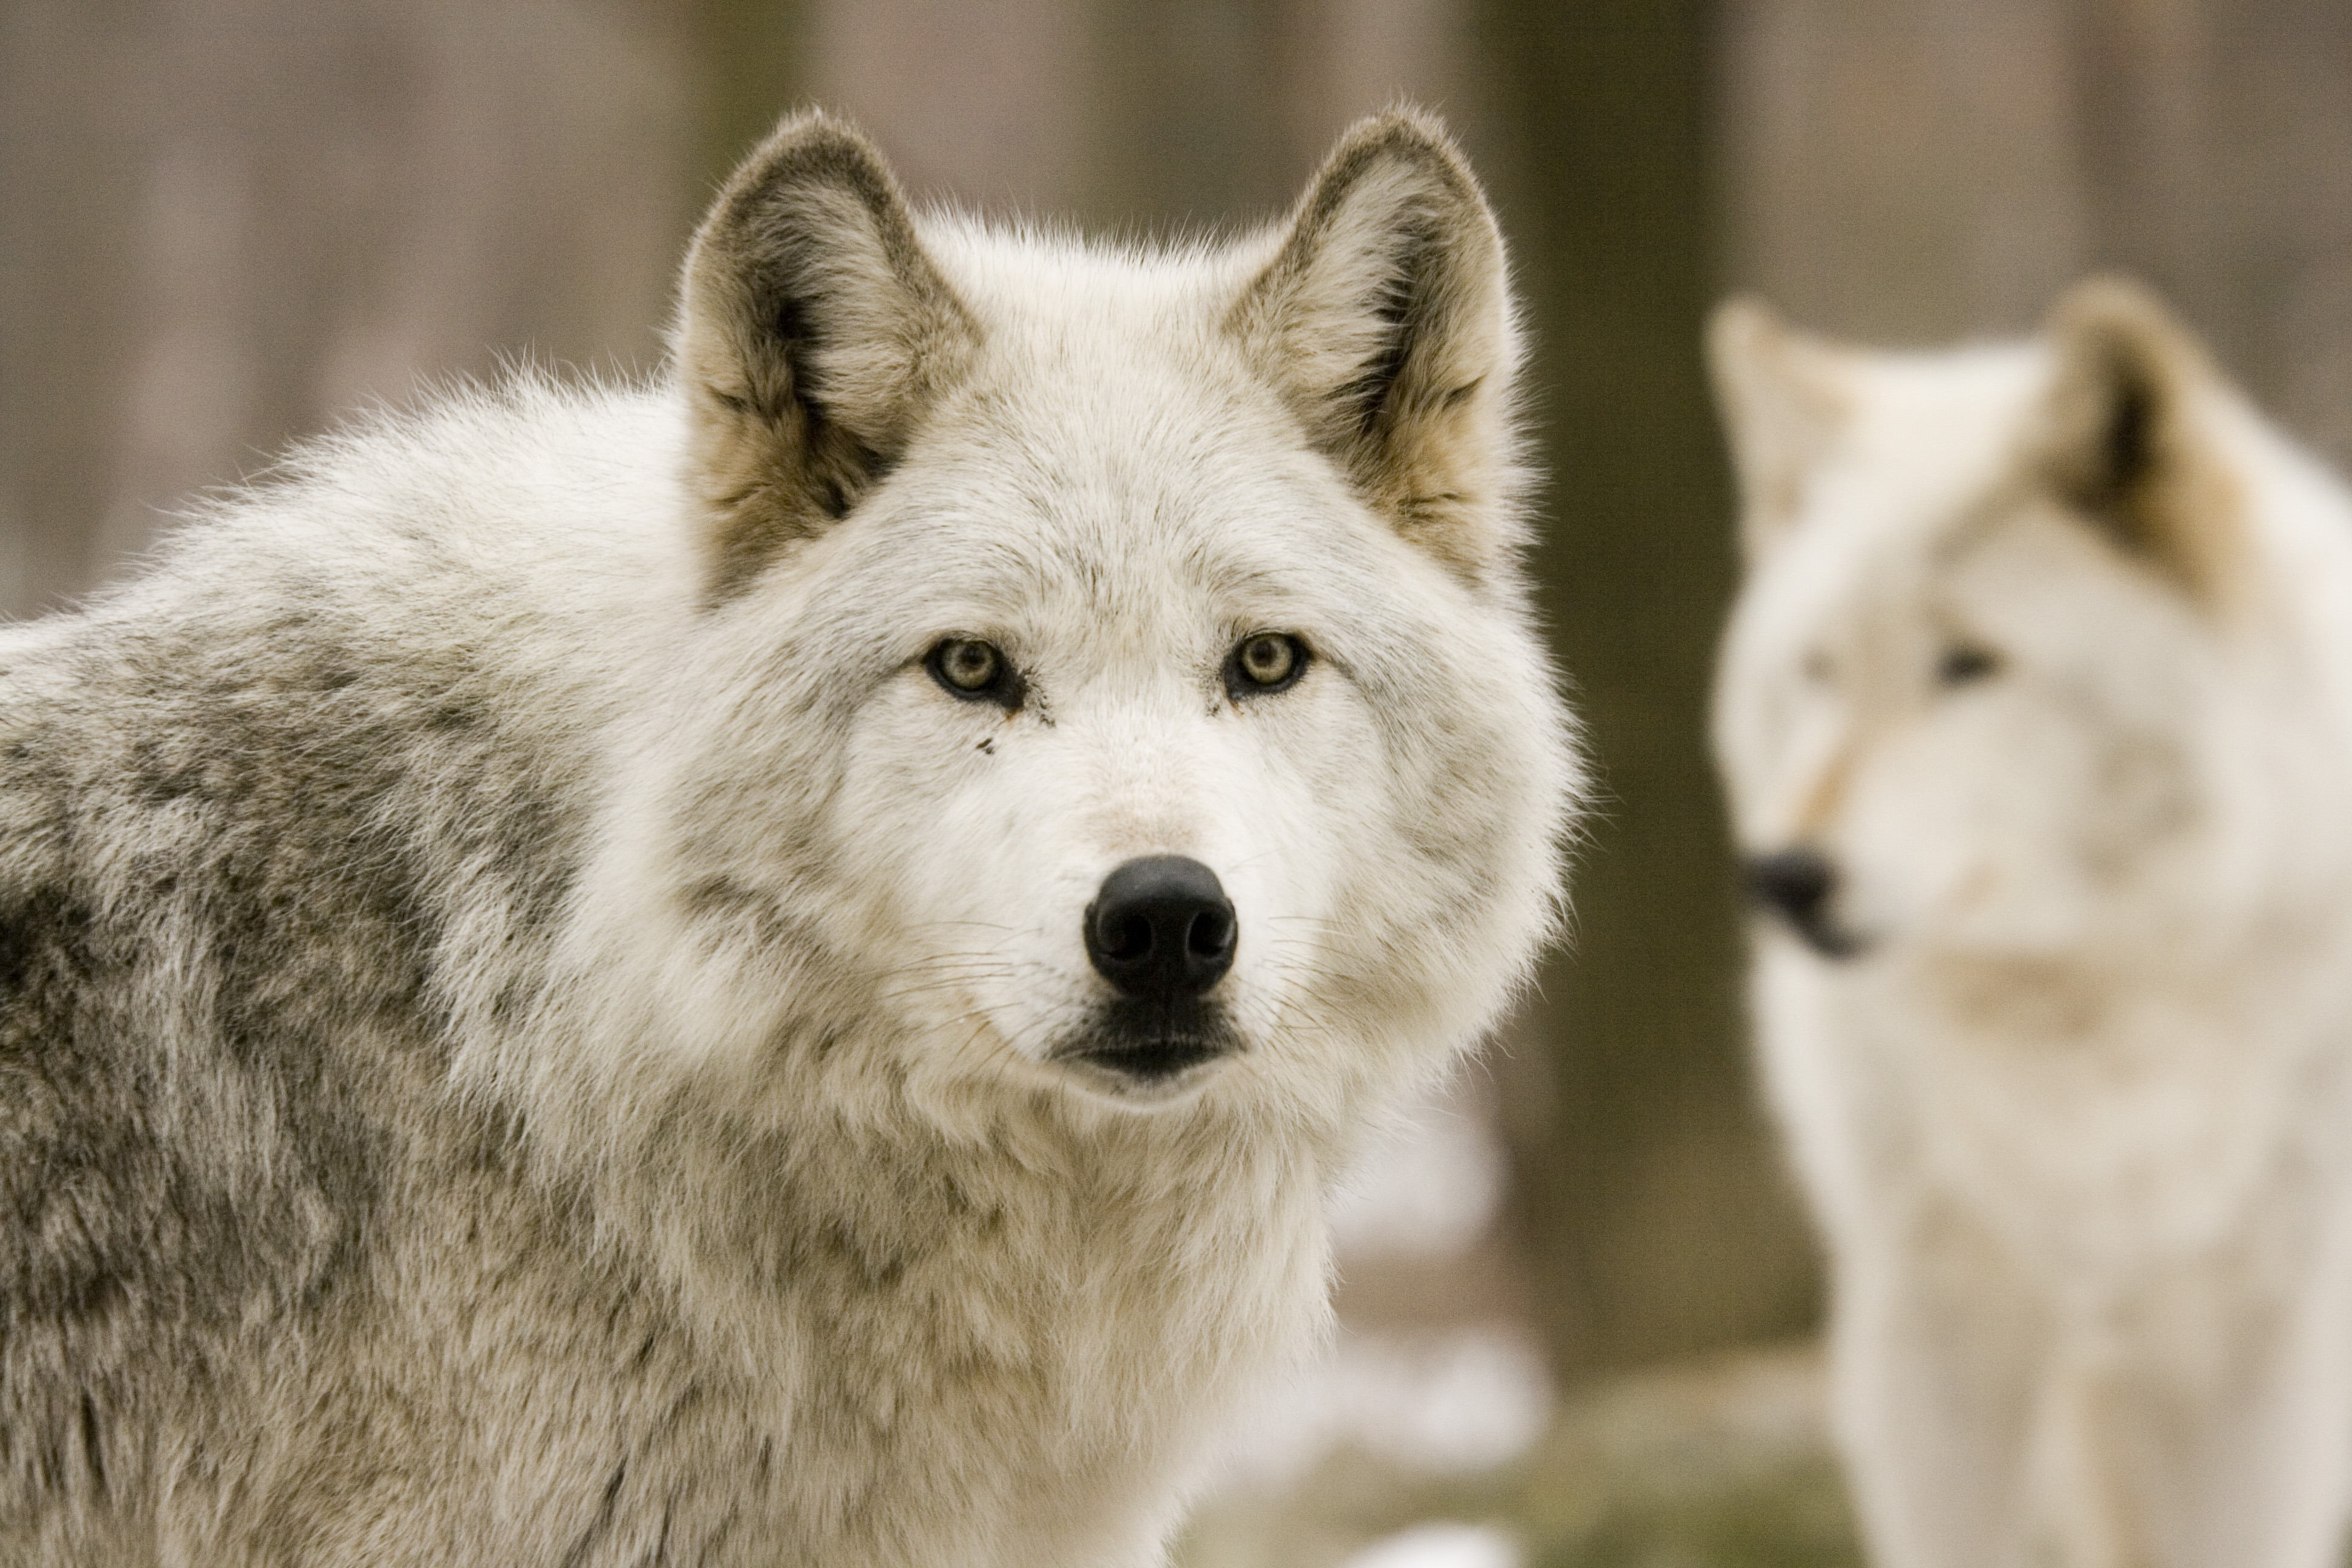 against the reintroduction of grey wolves Lessons from wolves: stakeholder perspectives and experiences with northern rocky wolf reintroduction jami l lessons from wolves.